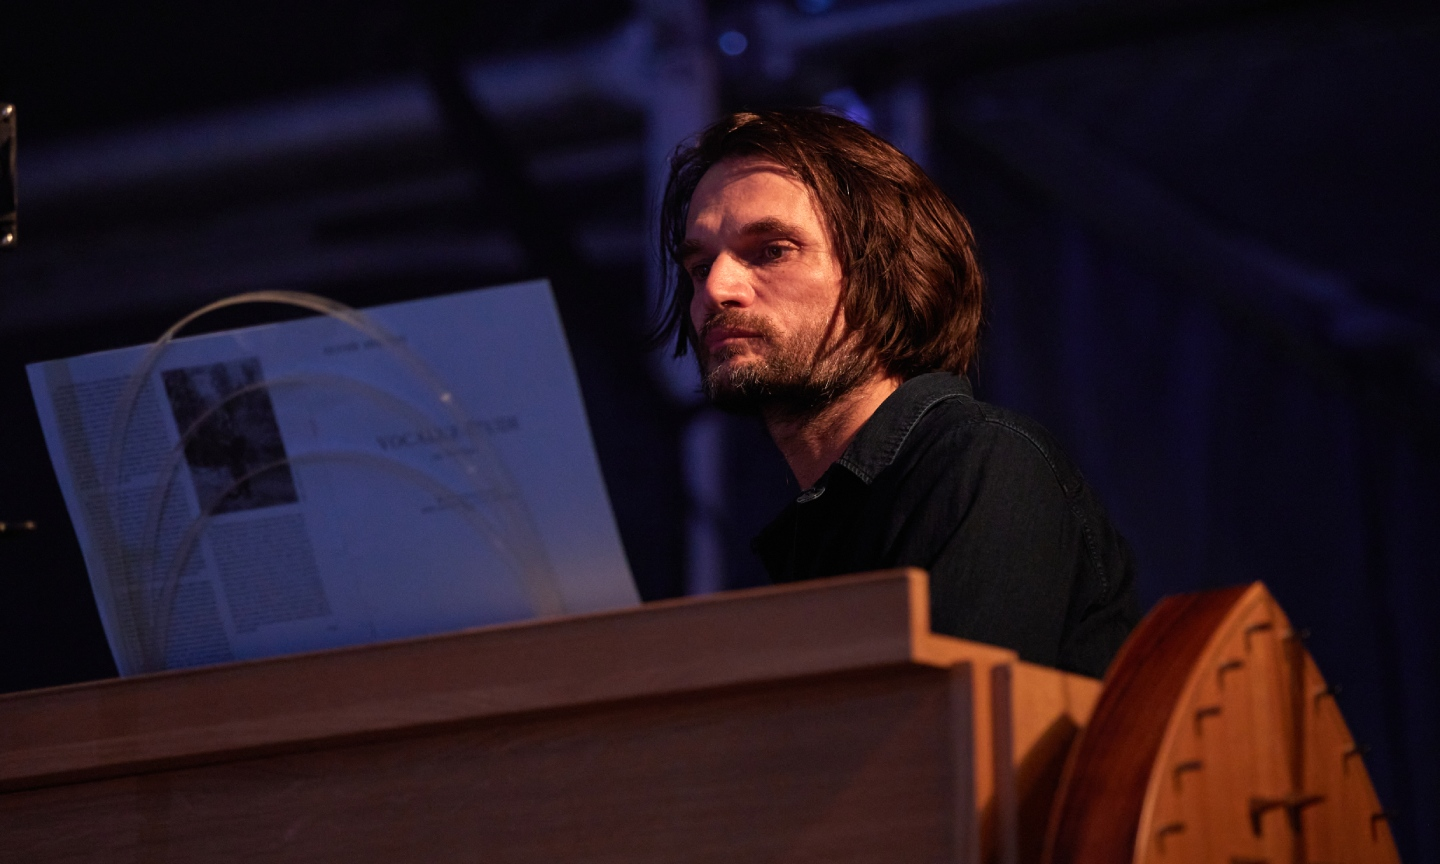 Jonny Greenwood Offers First Look At 'Spencer' Film Soundtrack With 'Crucifix'